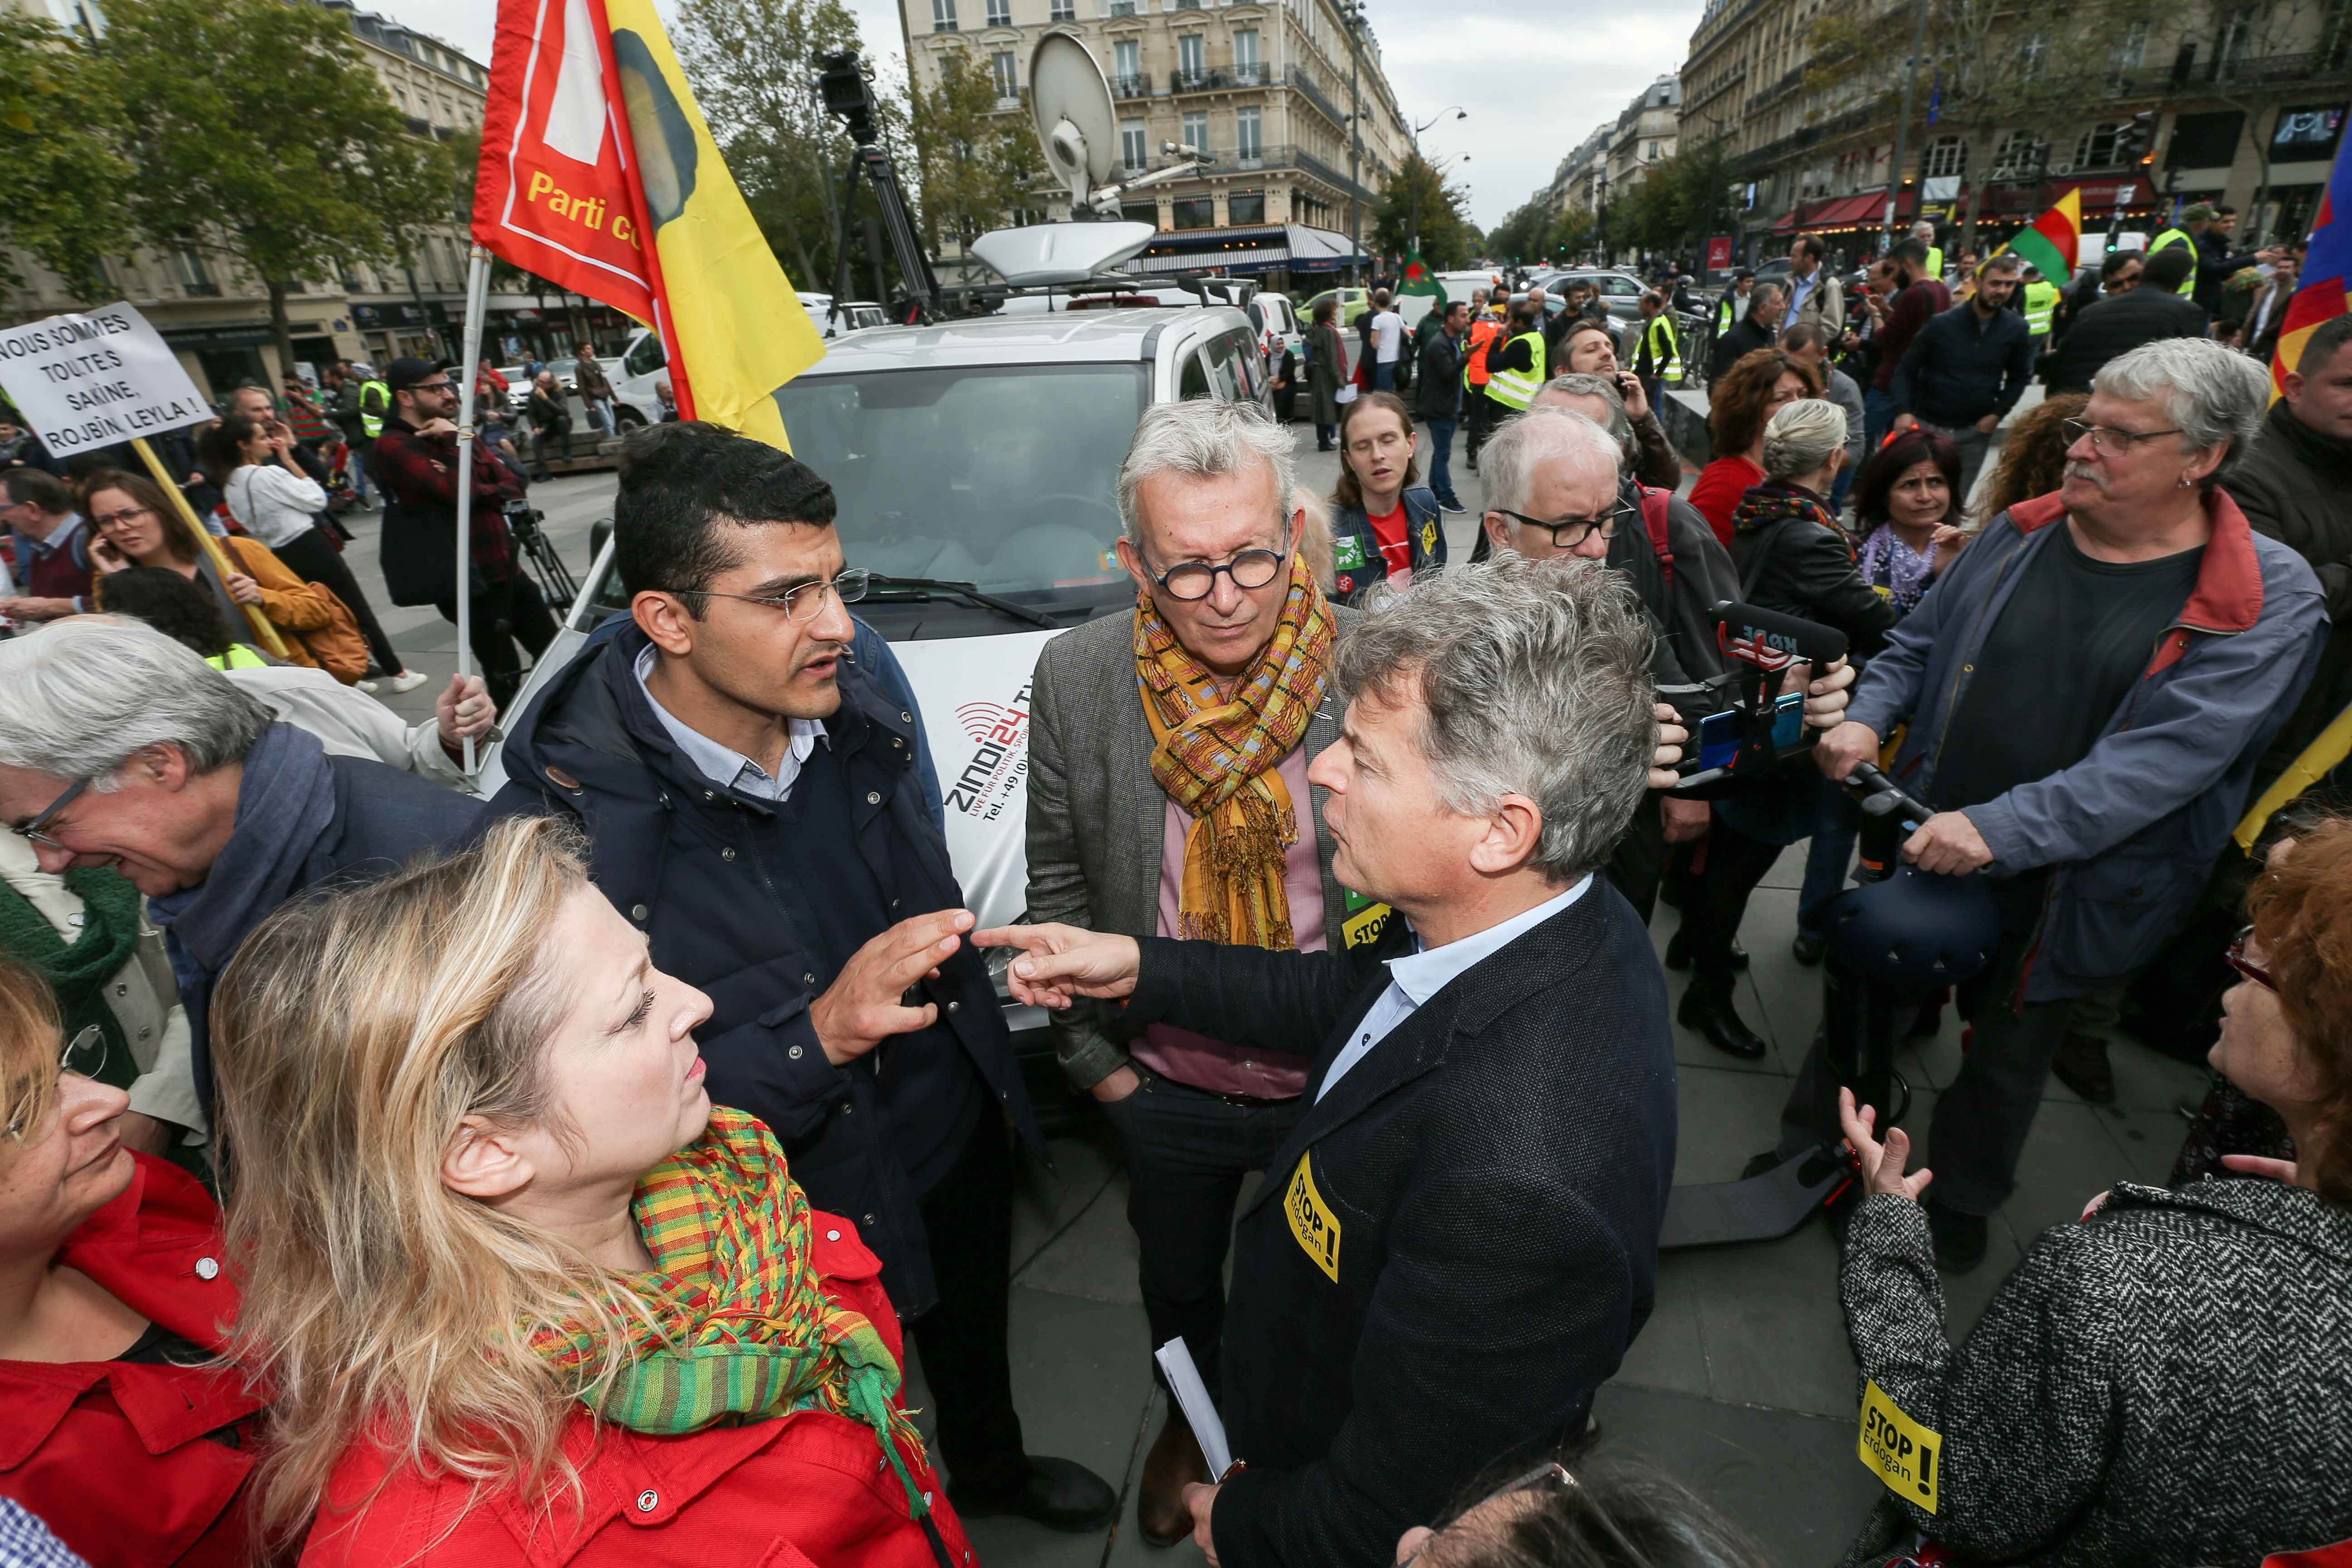 Former French Communist Party (PCF) national secretary Pierre Laurent (C) and PCF national secretary Fabien Roussel (CR), take part on October 12, 2019 in Paris in a demonstration in support of the Kurds and against the Turkish offensive in Syria. On Octob